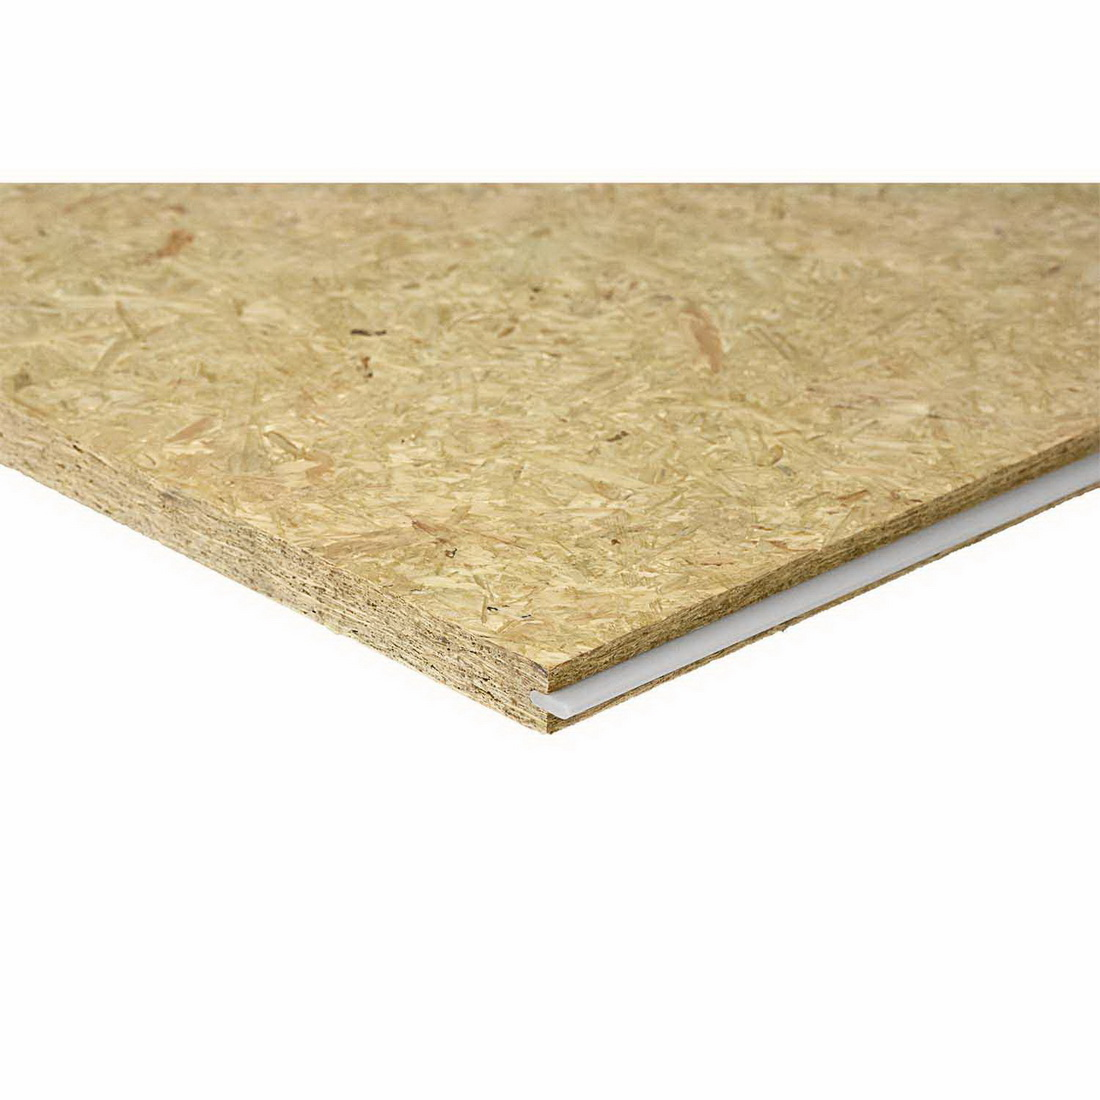 Strandfloor 3600x1200x20mm Untreated Tongue & Groove High Density Reconstituted Wood Panel